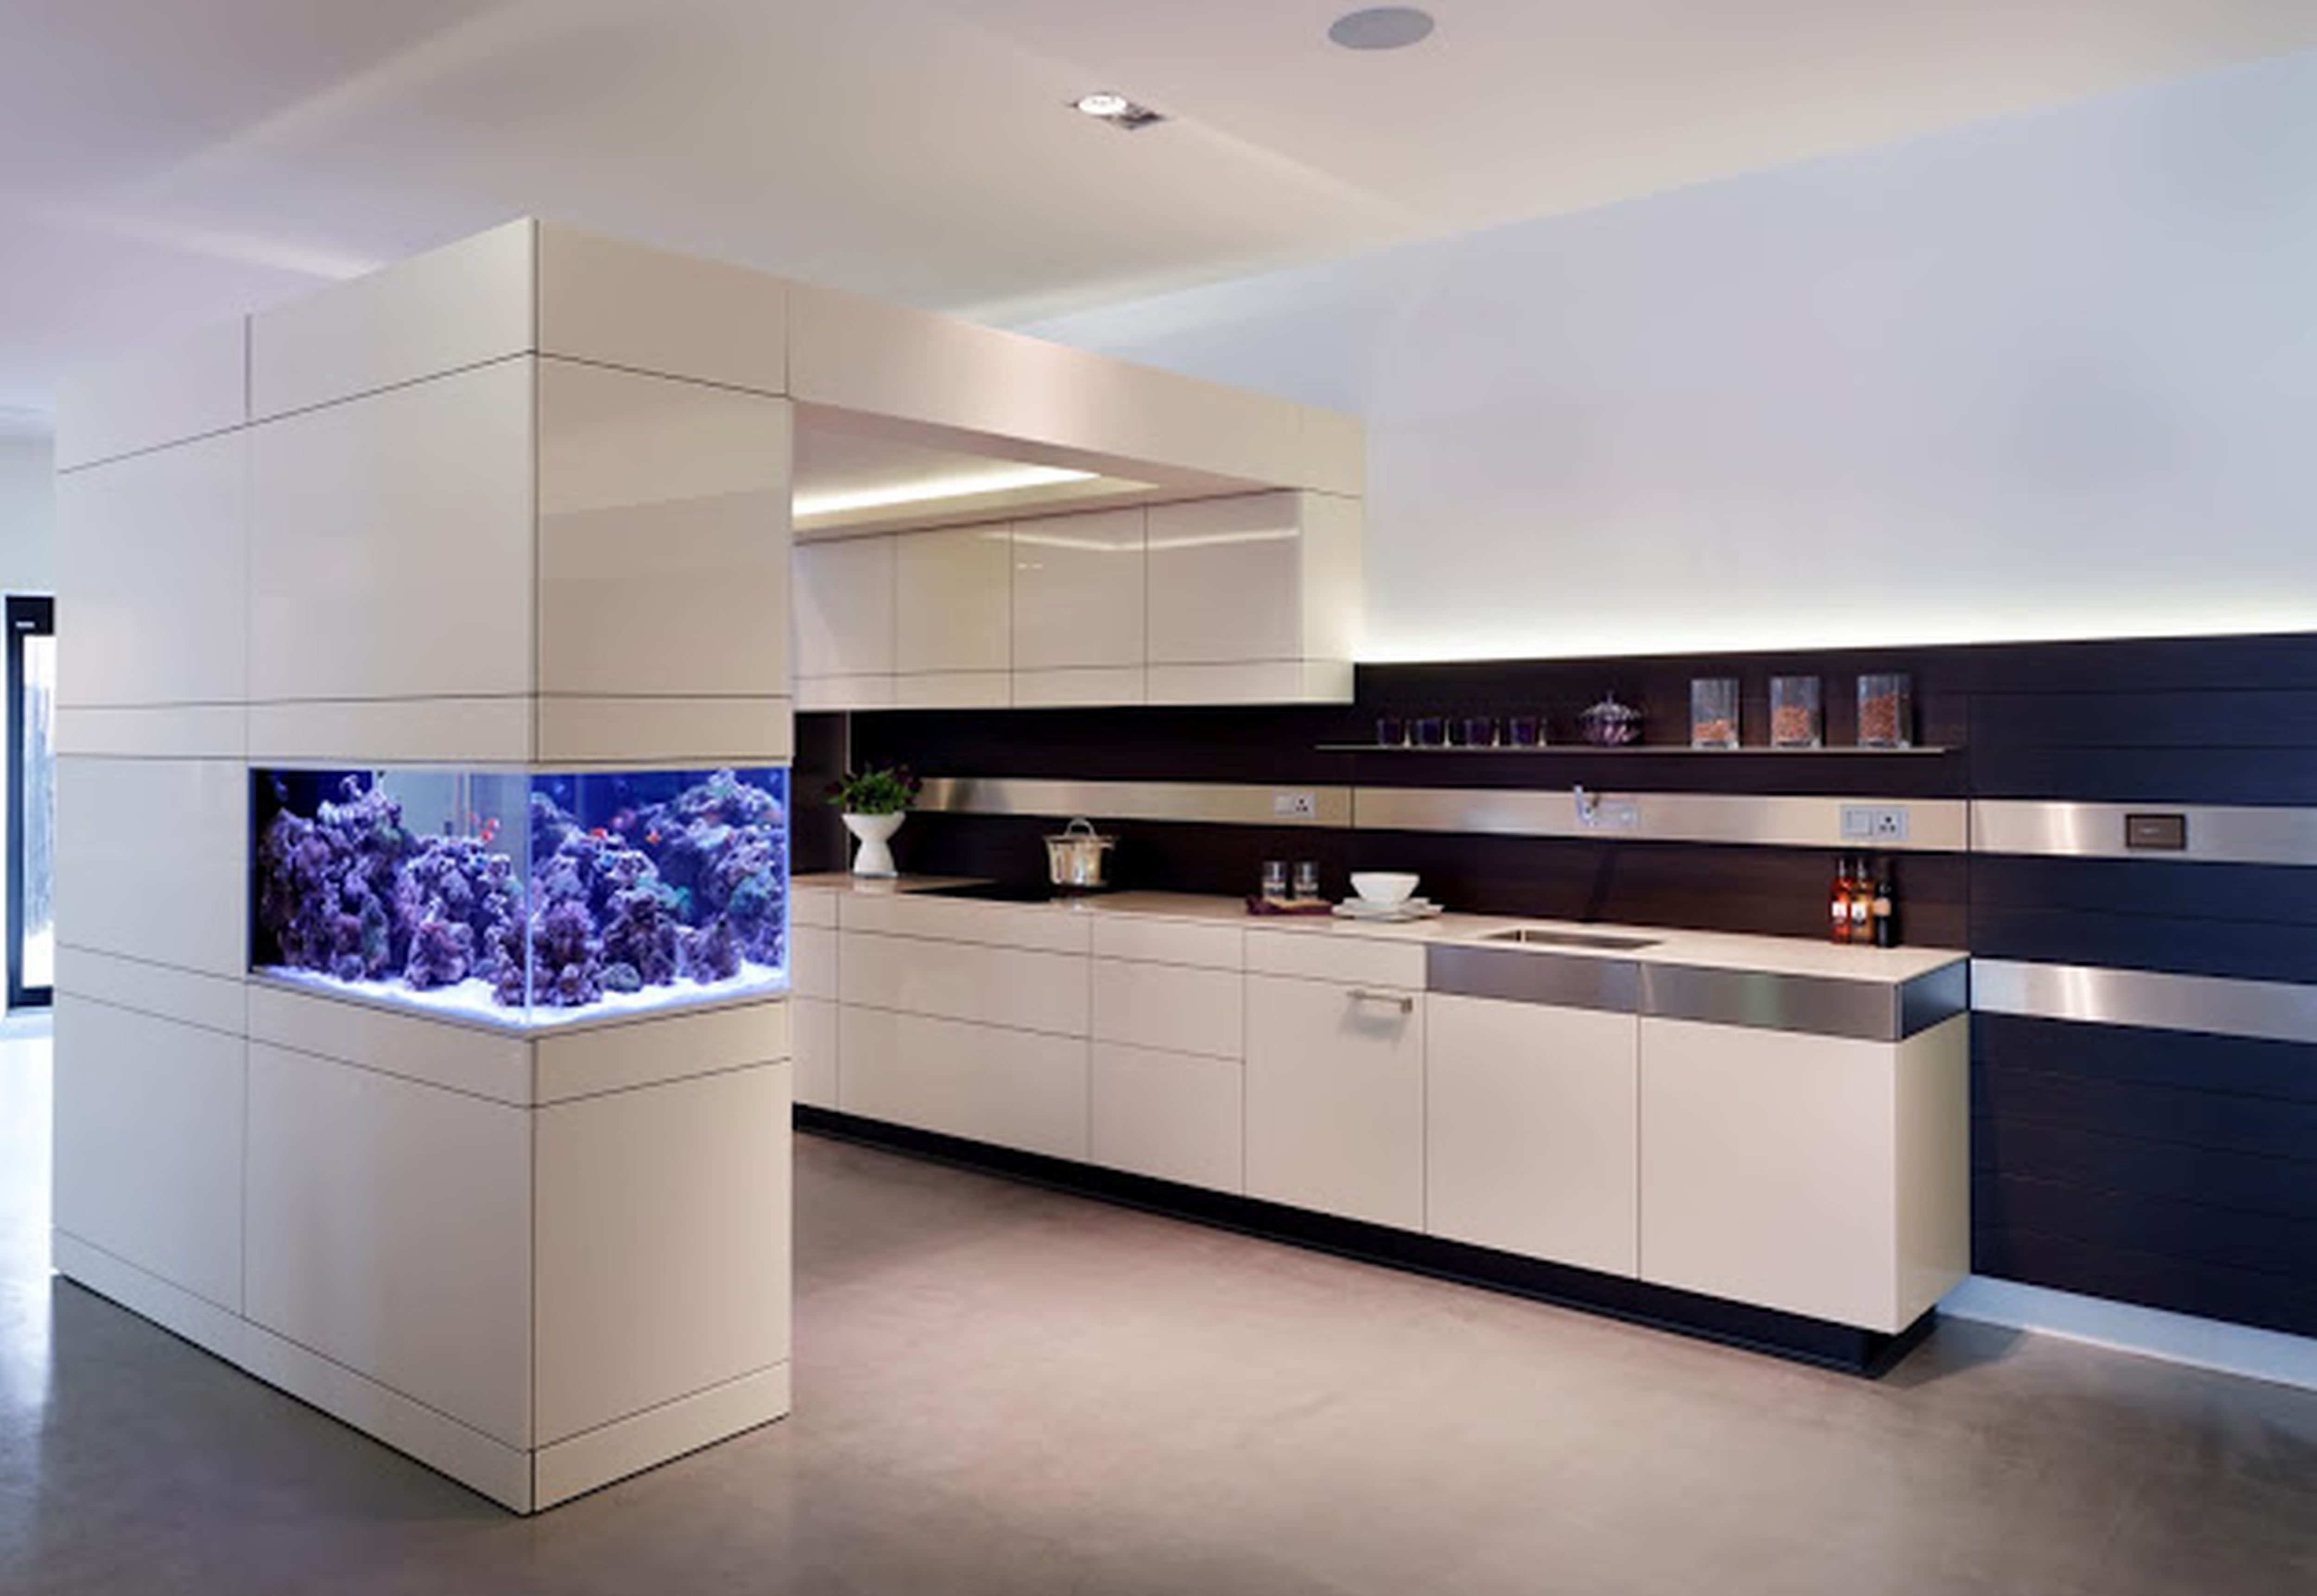 Kitchen the ultra modern of new kitchen ideas with white lacquer solid wood within attractive interior design as well as kitchen cabinets plus kitchen